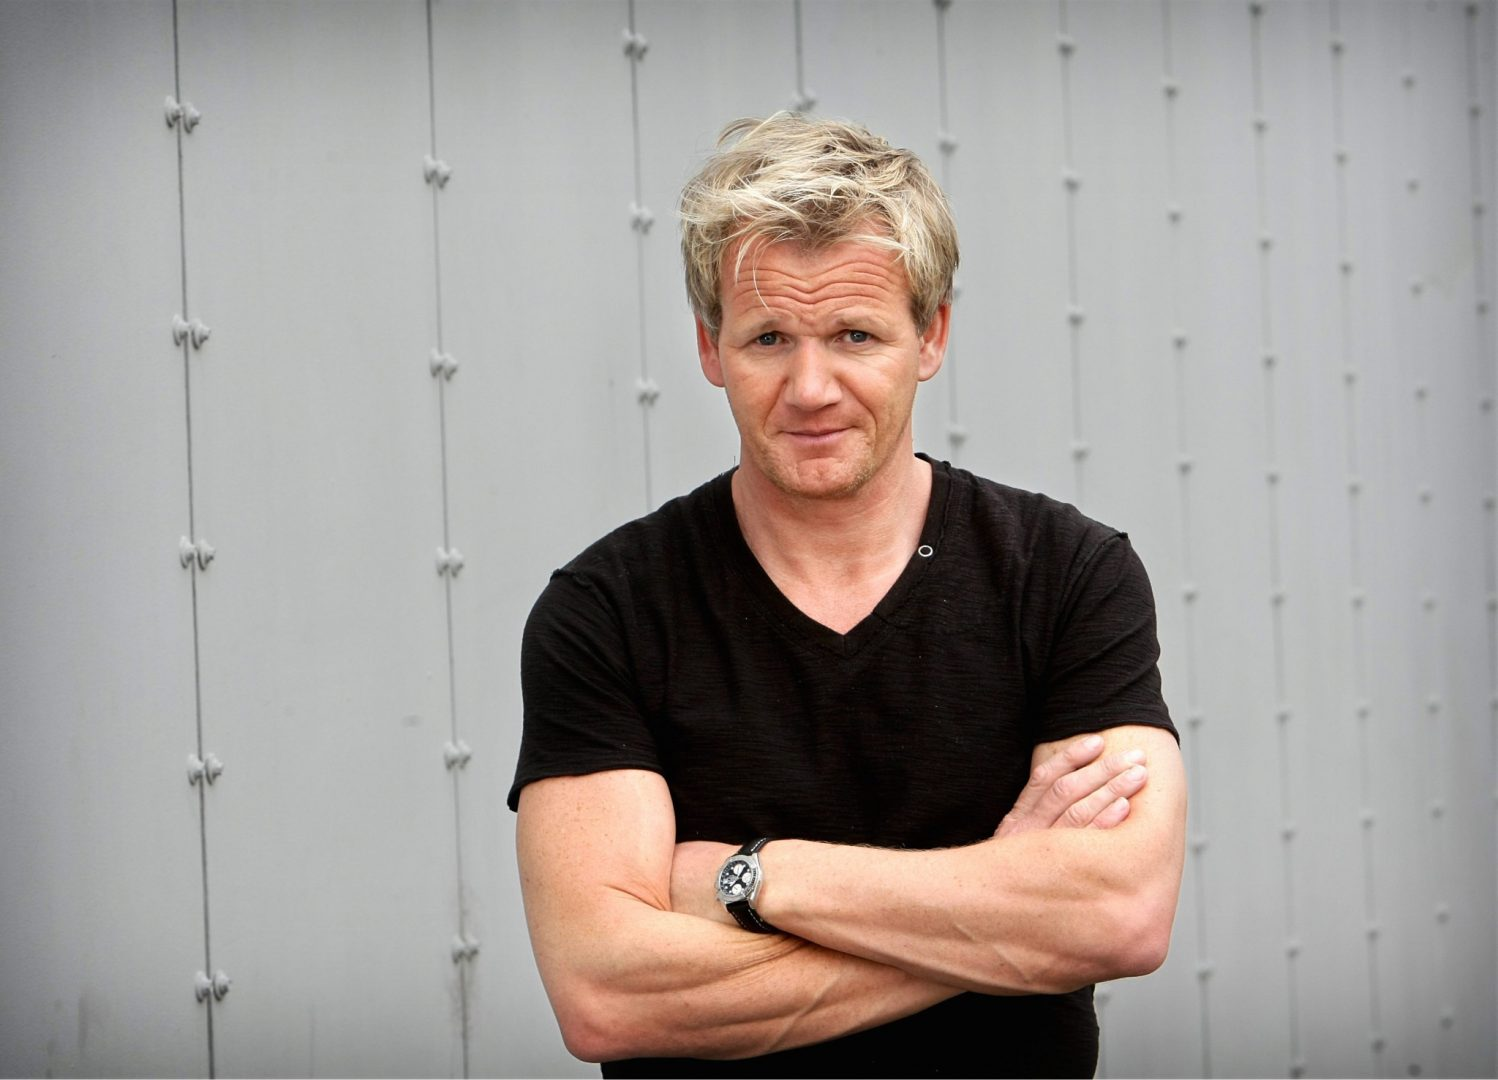 Gordon Ramsay shares his first rule of manners with Loaded